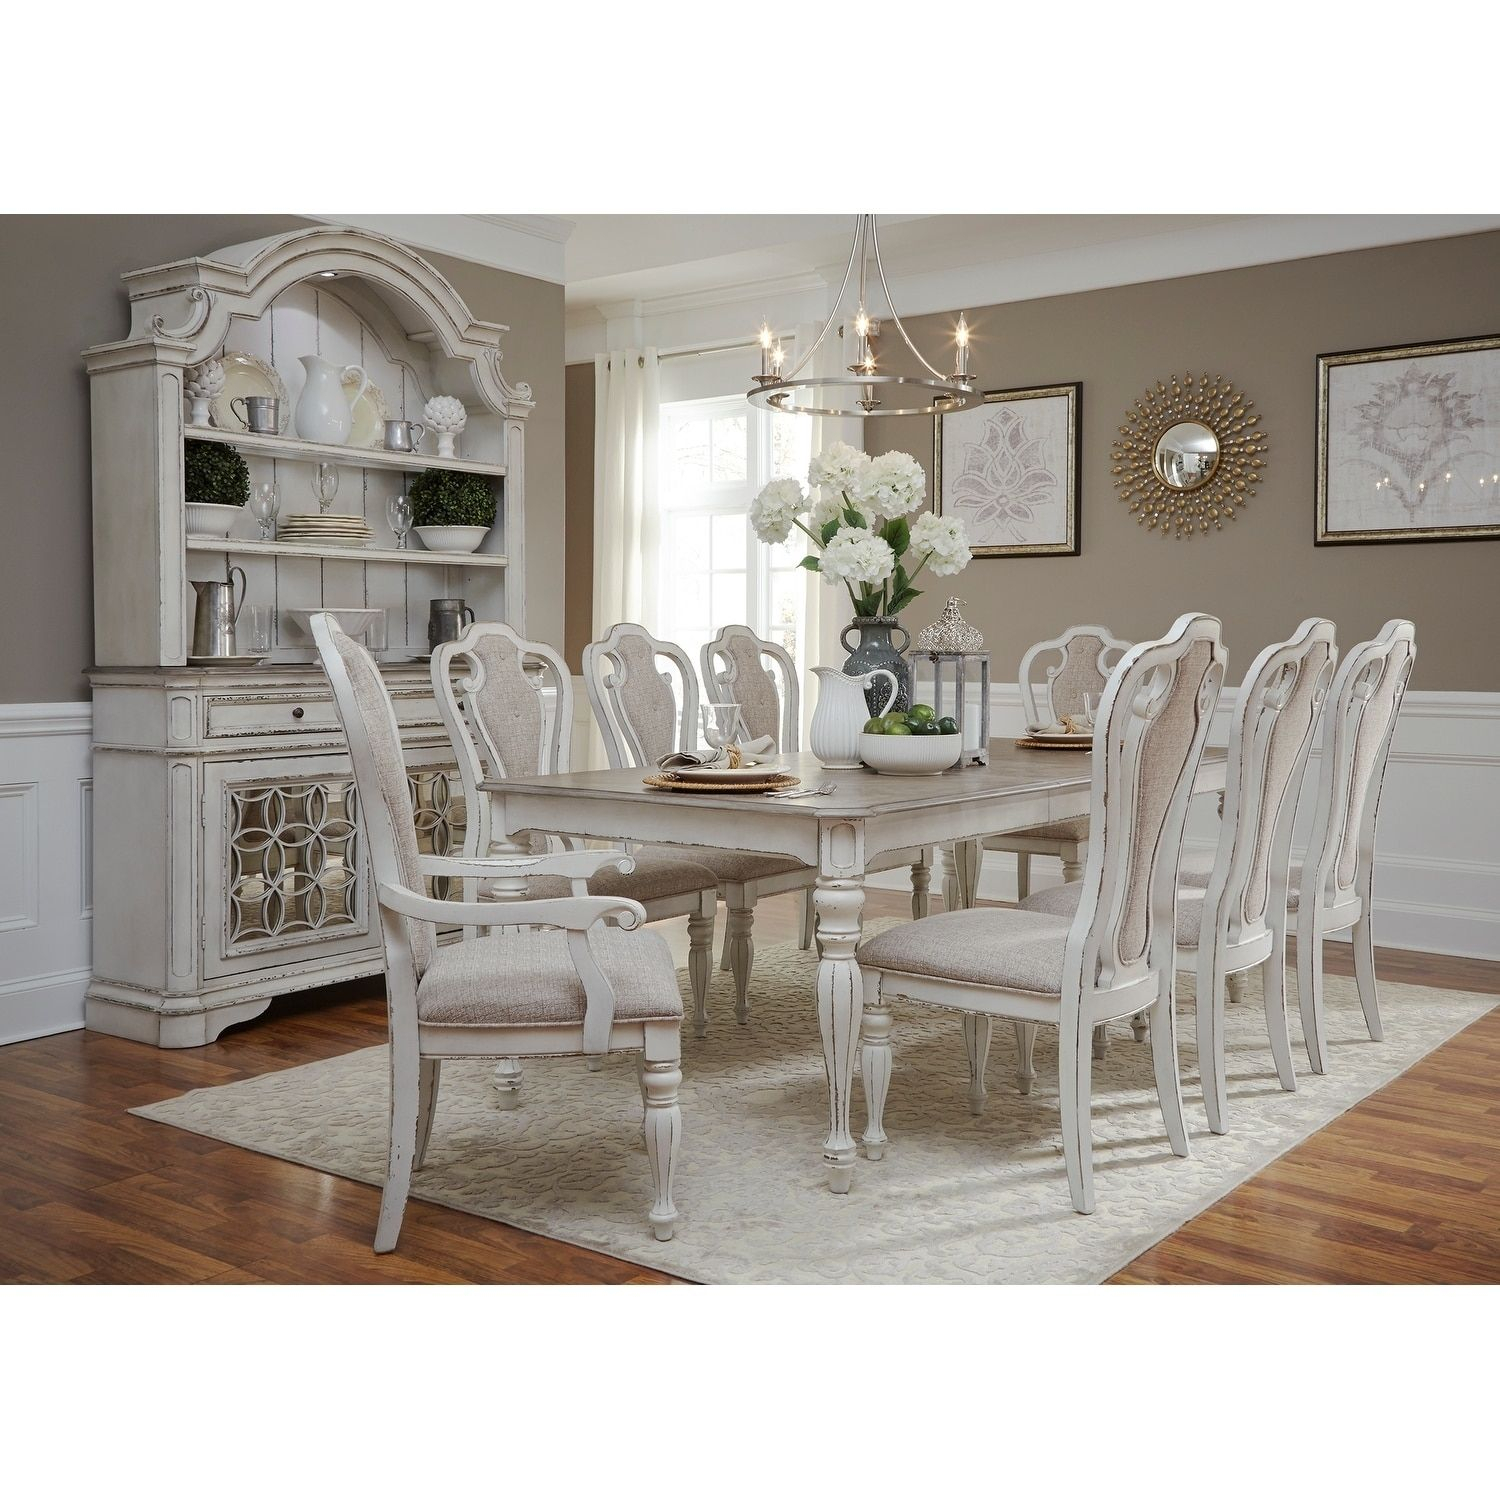 Magnolia Manor Antique White 7 Piece Splat Back Rectangular Dinette Within Best And Newest Mitzel 3 Piece Dining Sets (Image 12 of 20)